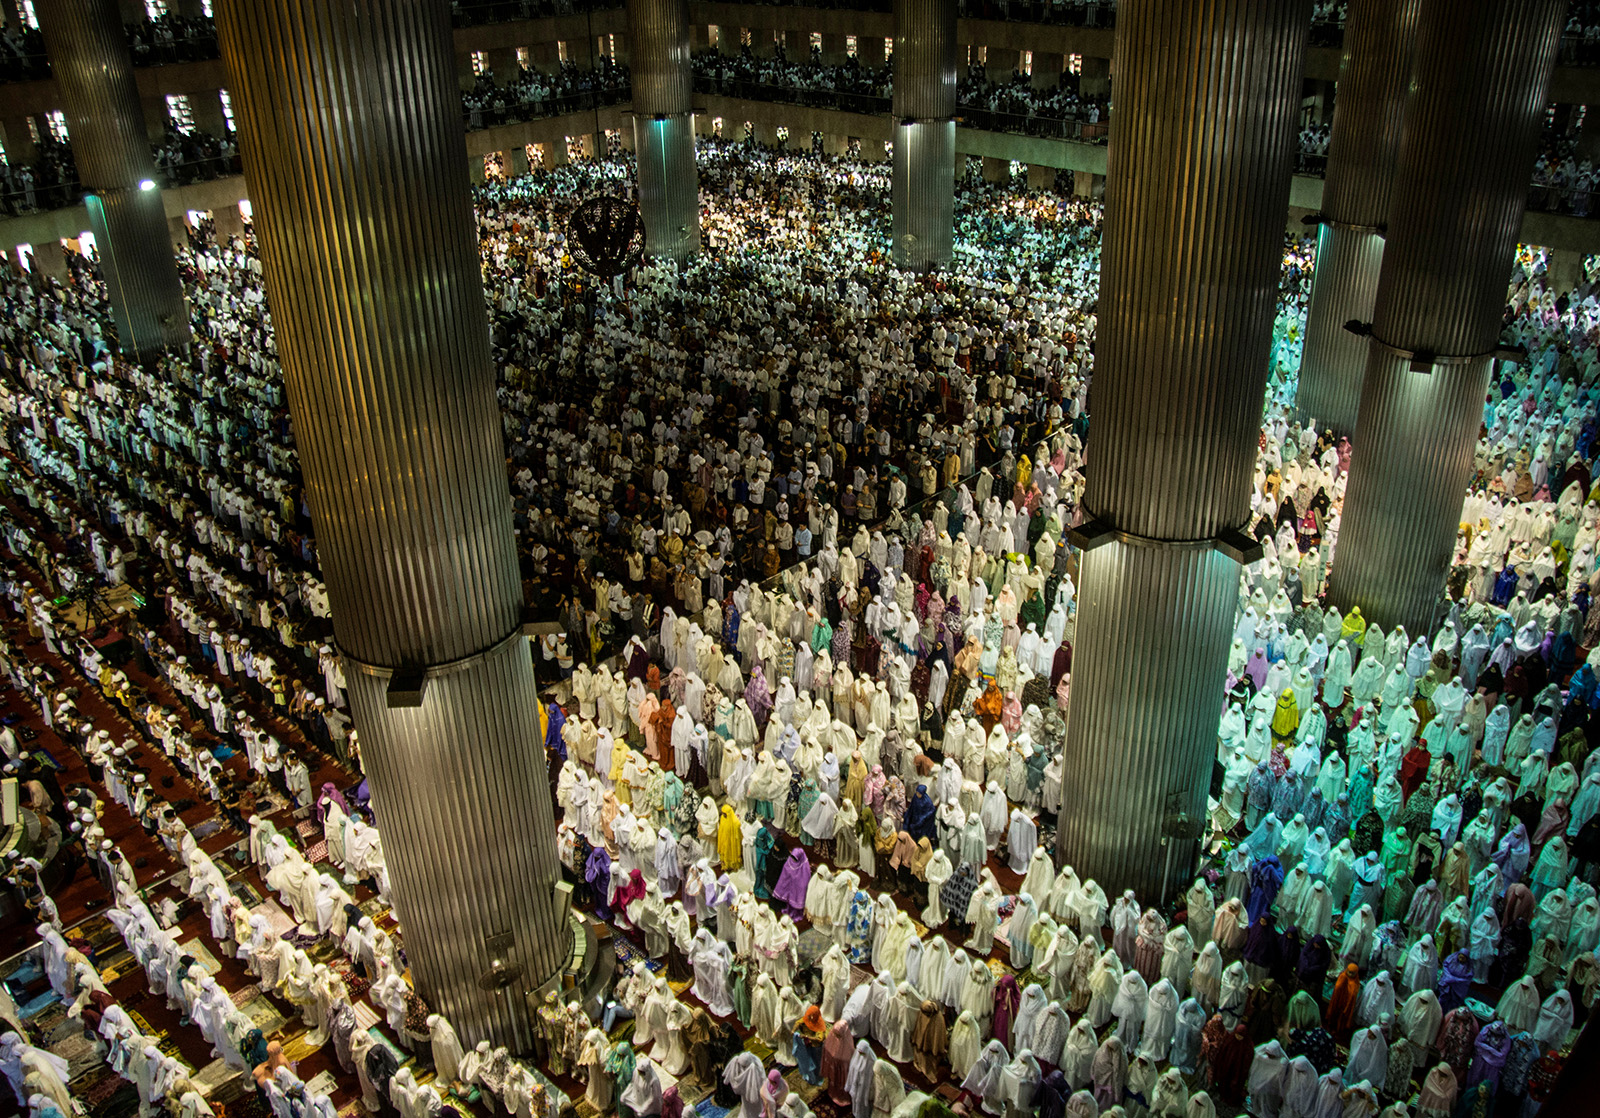 Muslims perform prayers for  Eid al-Fitr  at Istiqlal Mosque, Jakarta